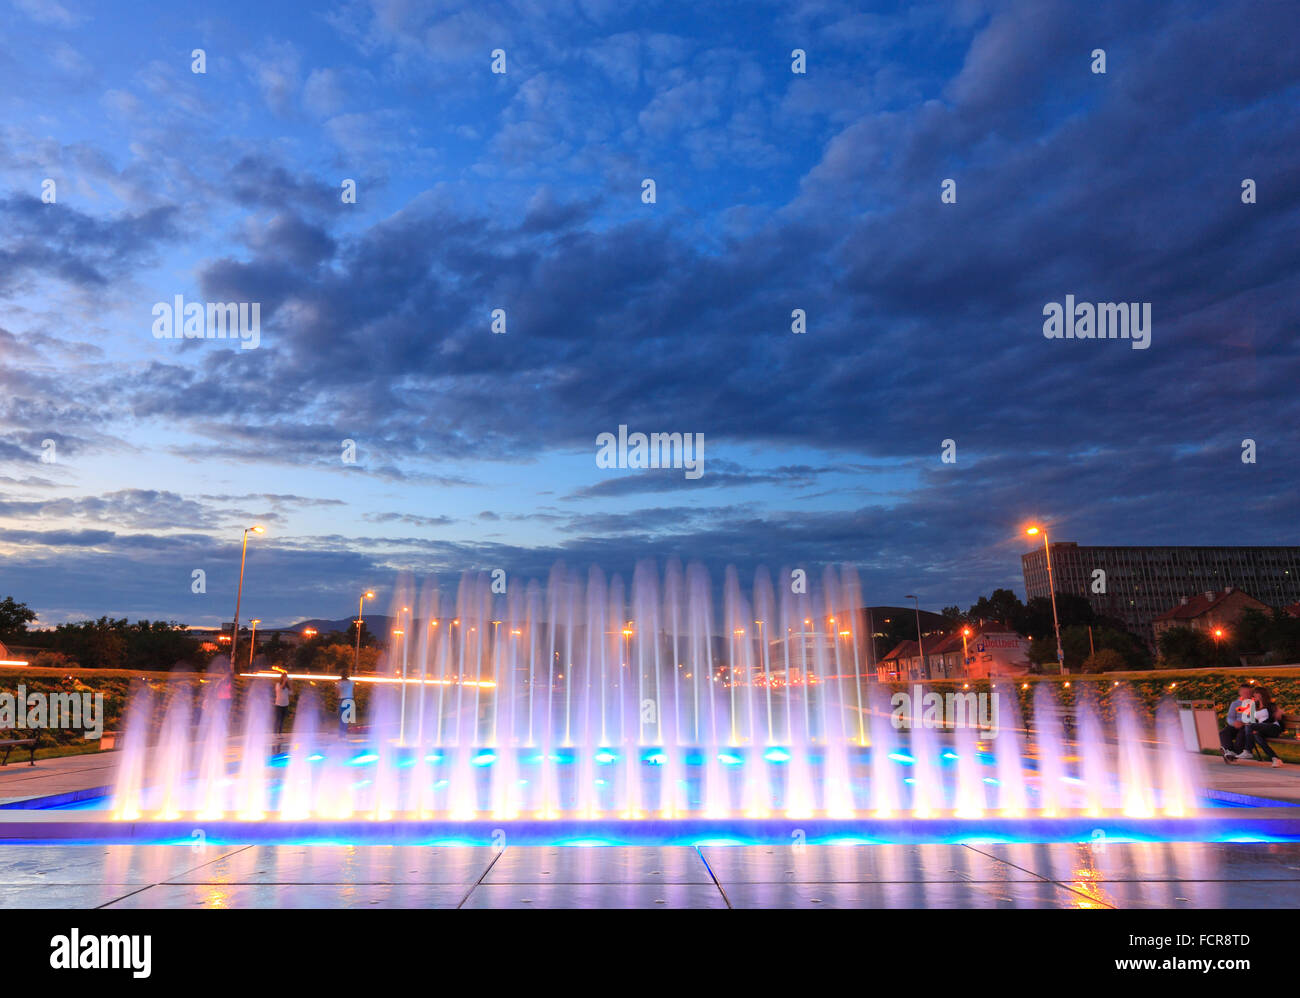 New fountain near new National Library in Zagreb, Croatia. - Stock Image